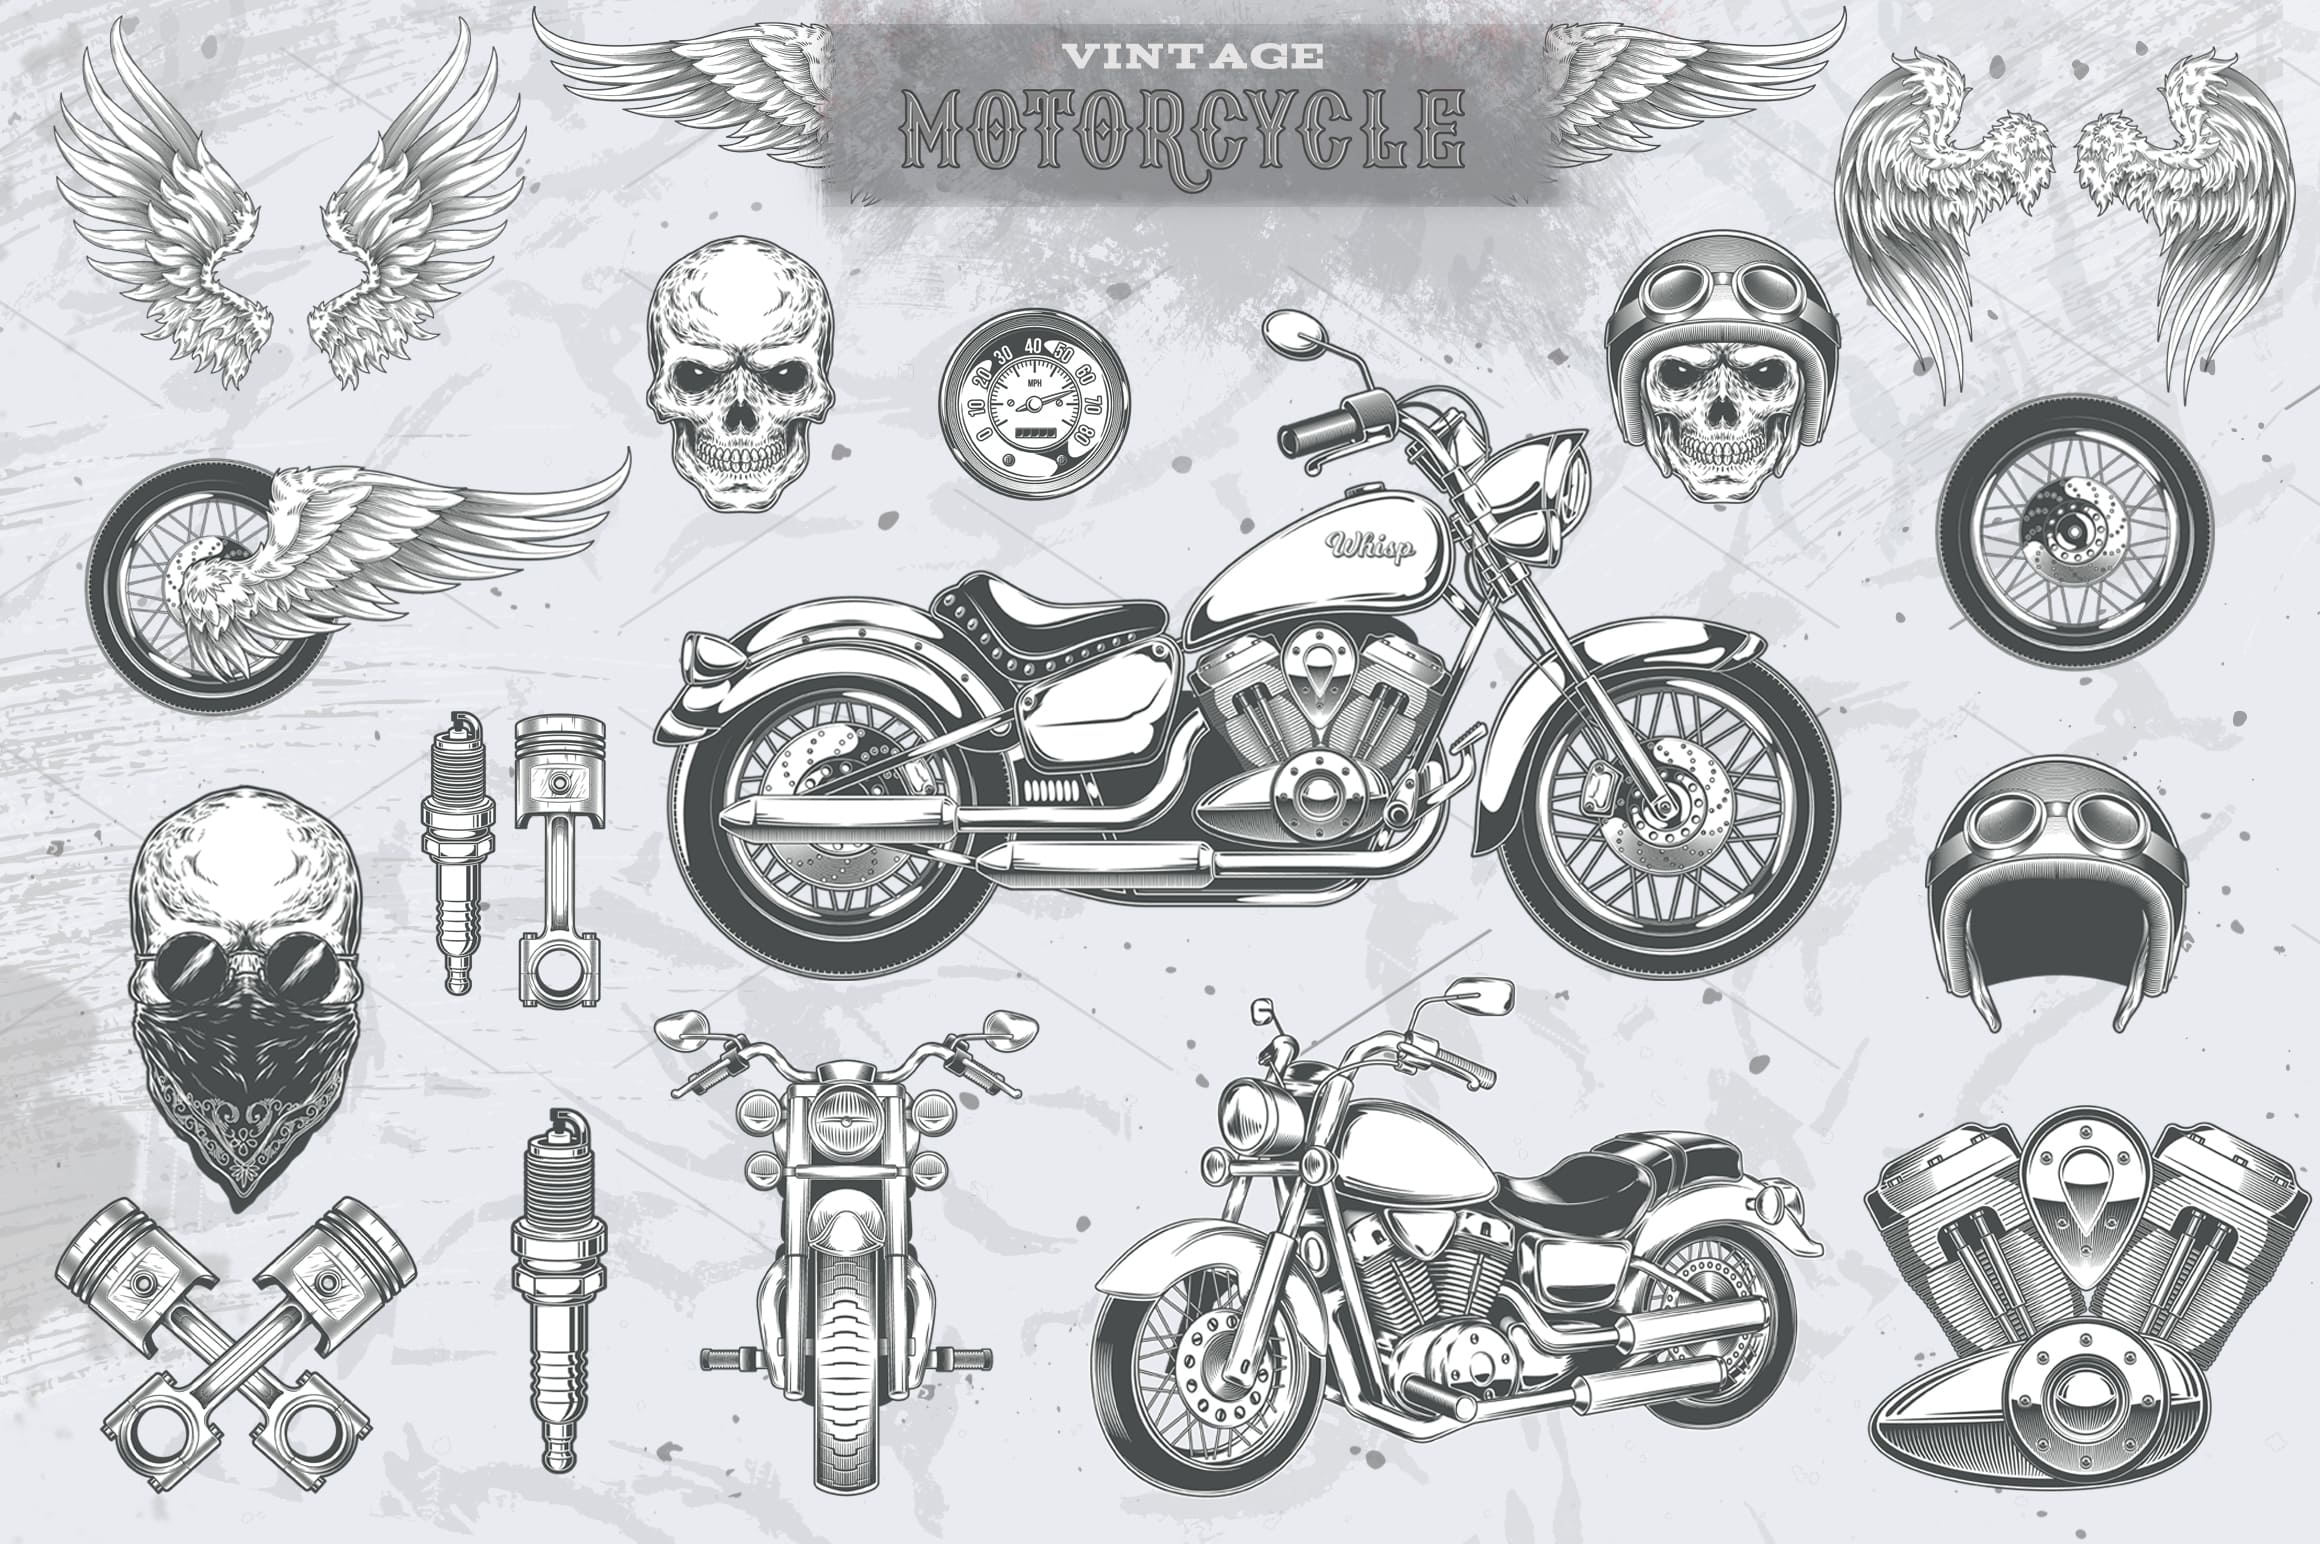 Vintage motorcycle, skulls and labels example image 2